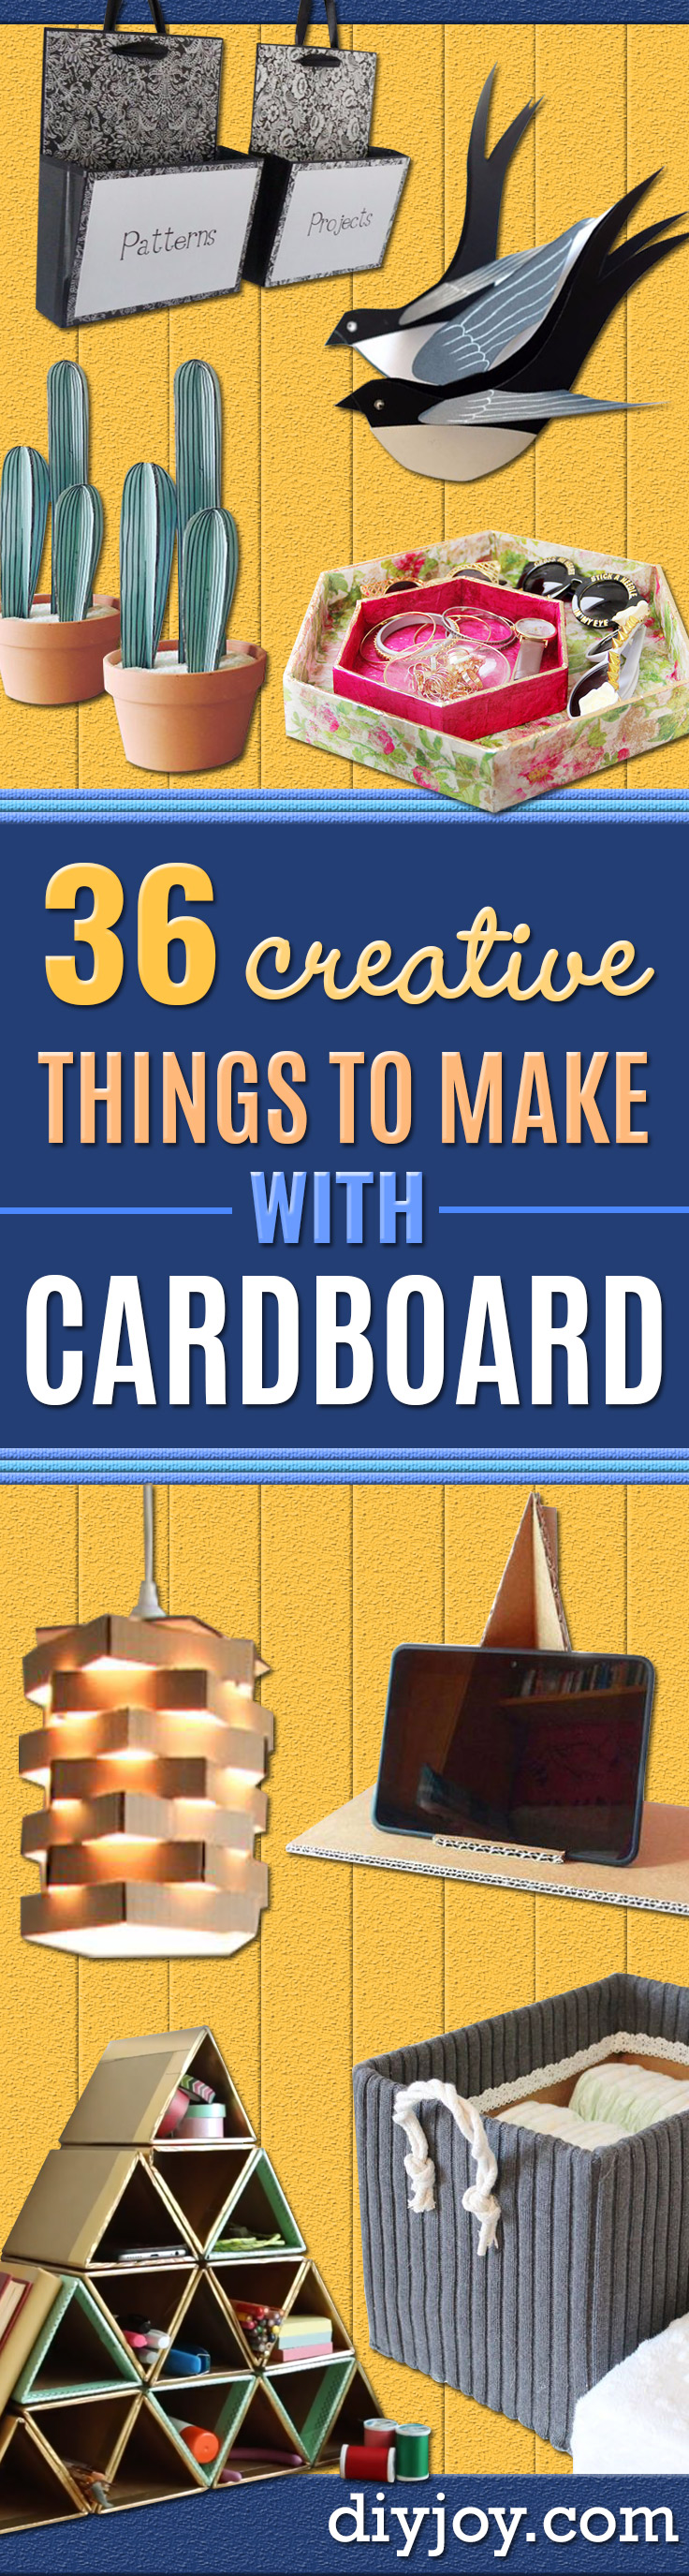 DIY Ideas With Cardboard - How To Make Room Decor Crafts for Kids - Easy and Crafty Storage Ideas For Room - Toilet Paper Roll Projects Tutorials - Fun Furniture Ideas with Cardboard - Cheap, Quick and Easy Wall Decorations http://diyjoy.com/diy-ideas-cardboard